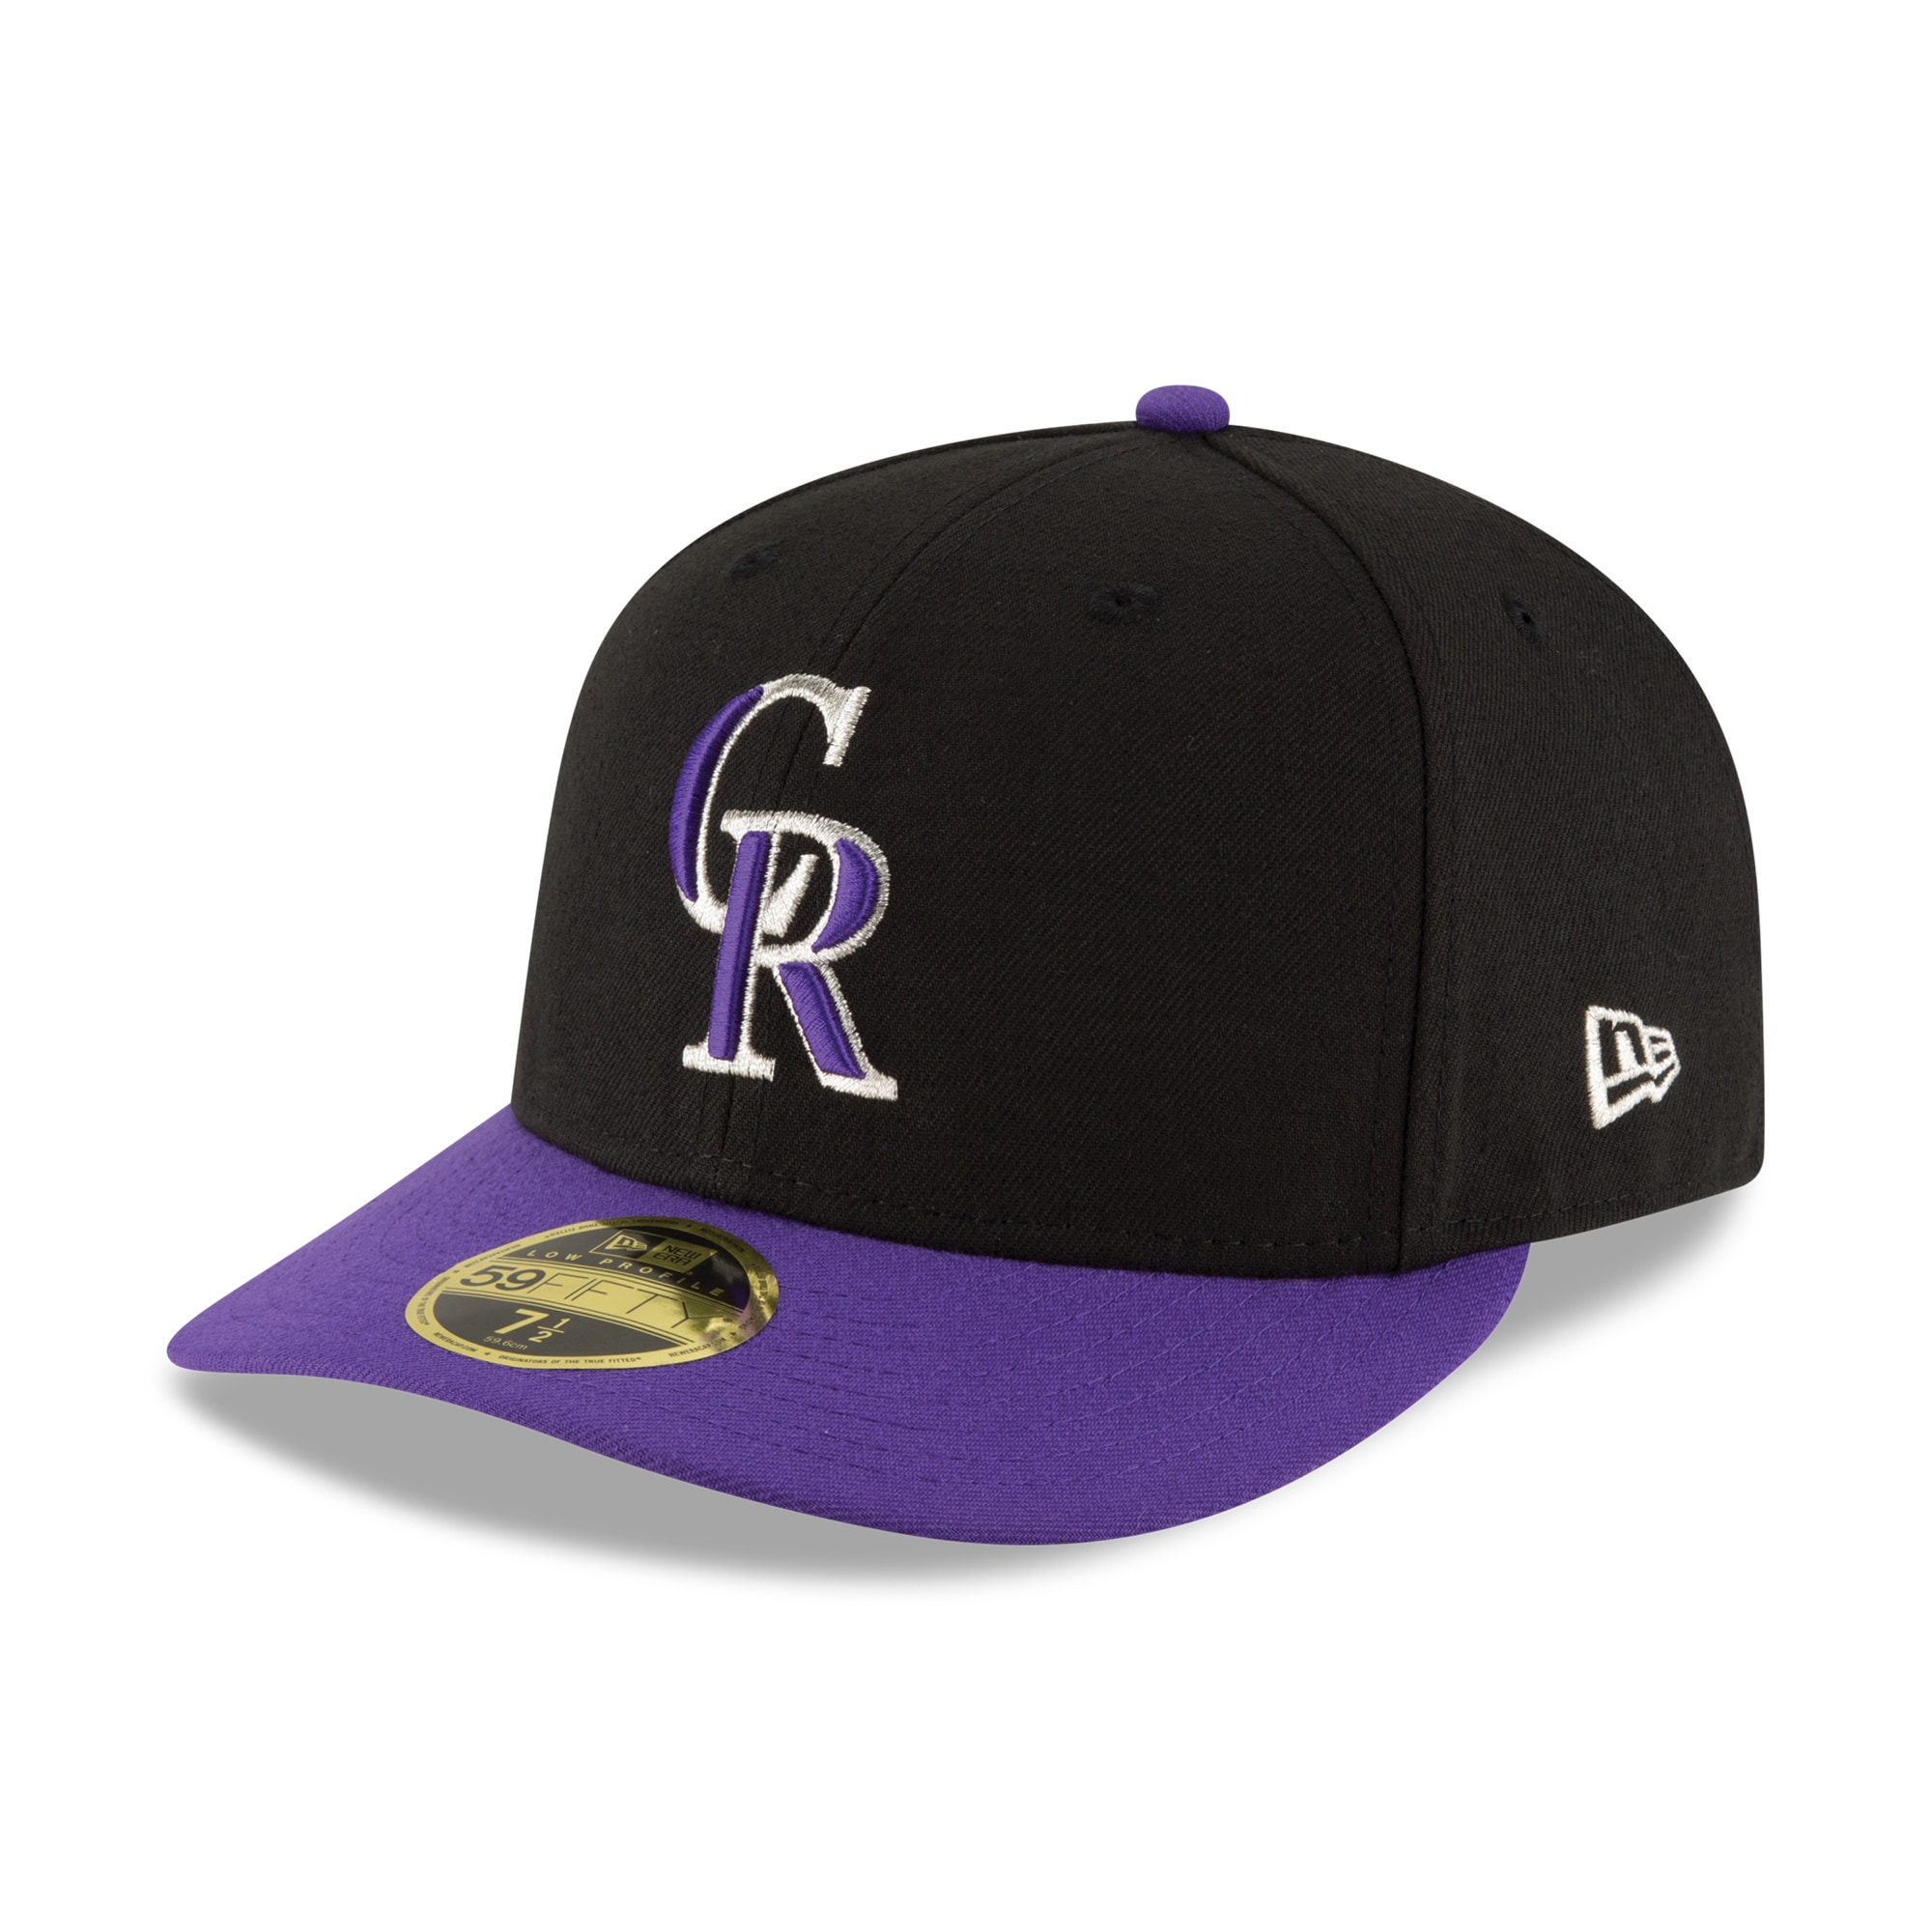 Colorado Rockies New Era Alternate Authentic Collection On-Field Low Profile 59FIFTY Fitted Hat - Black/Purple